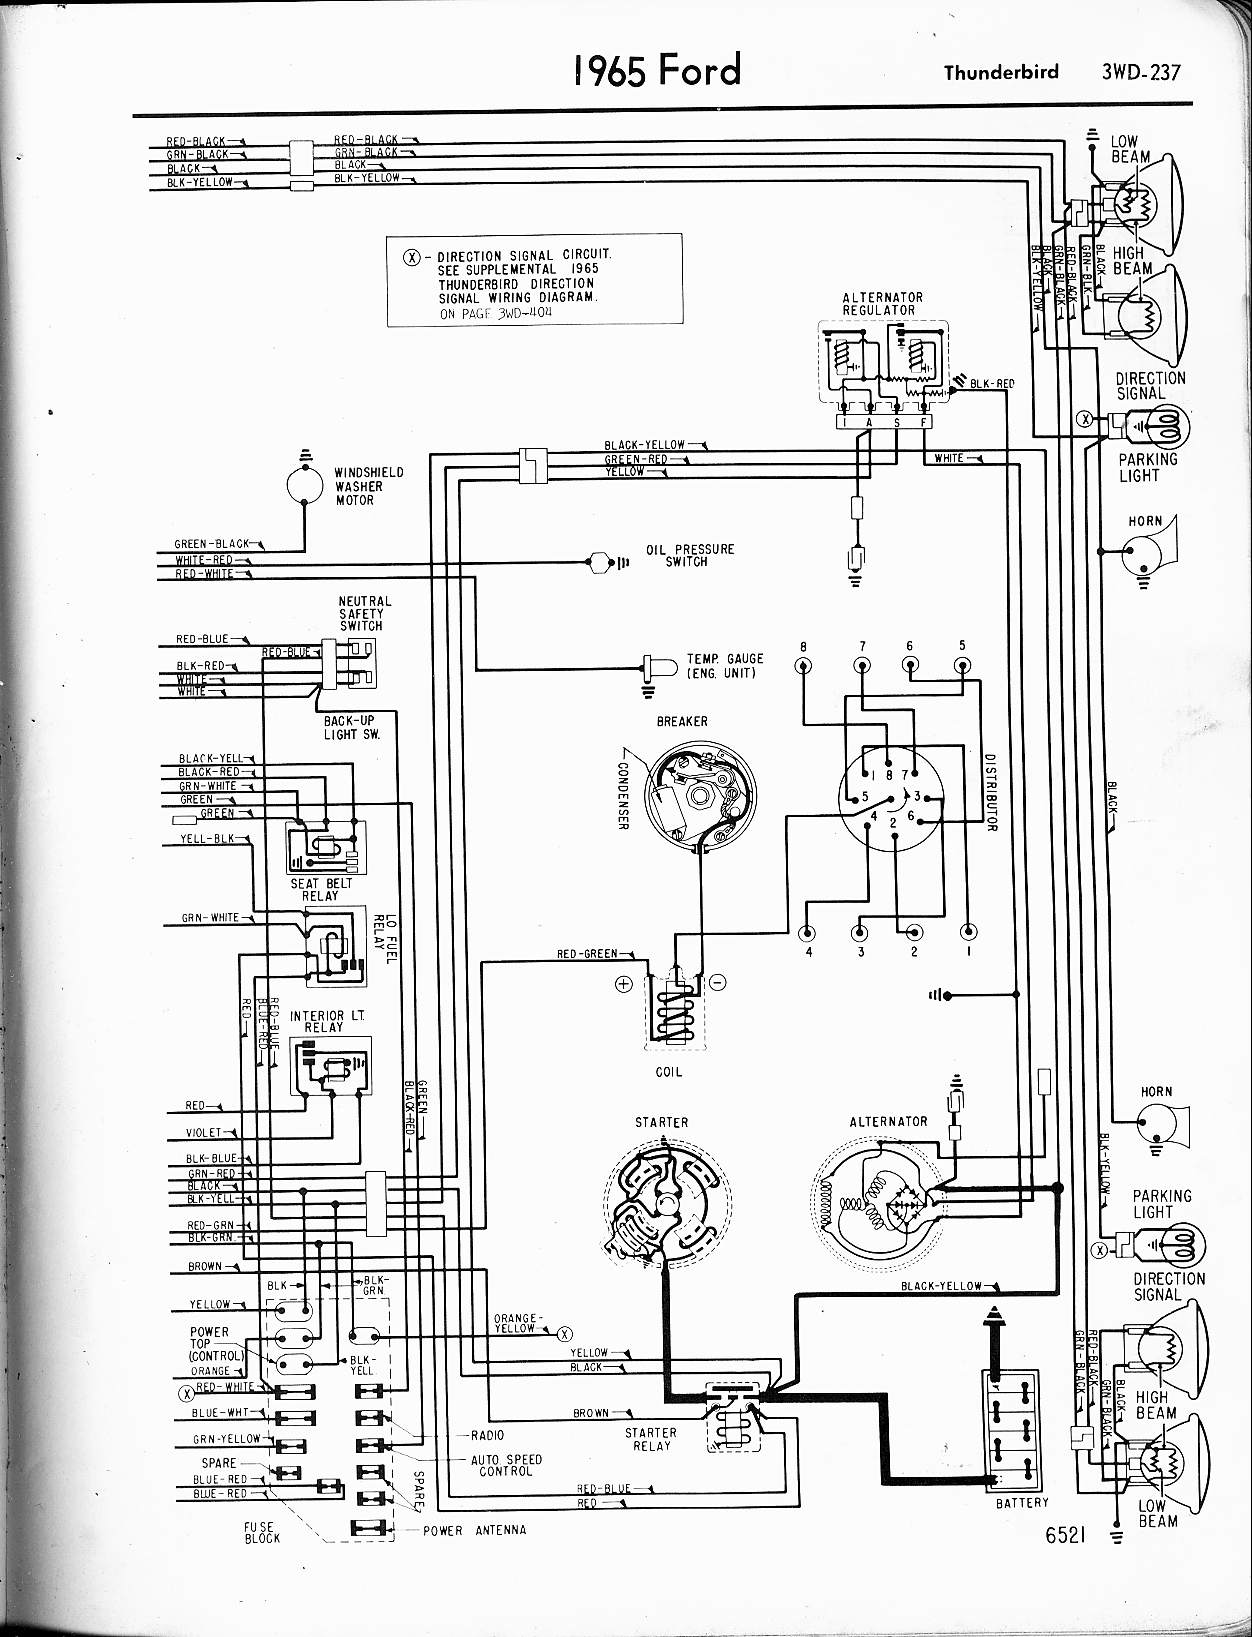 1955 Ford Thunderbird Fuse Box Location Wiring Diagram Data 1969 F 250 Also Falcon Panel